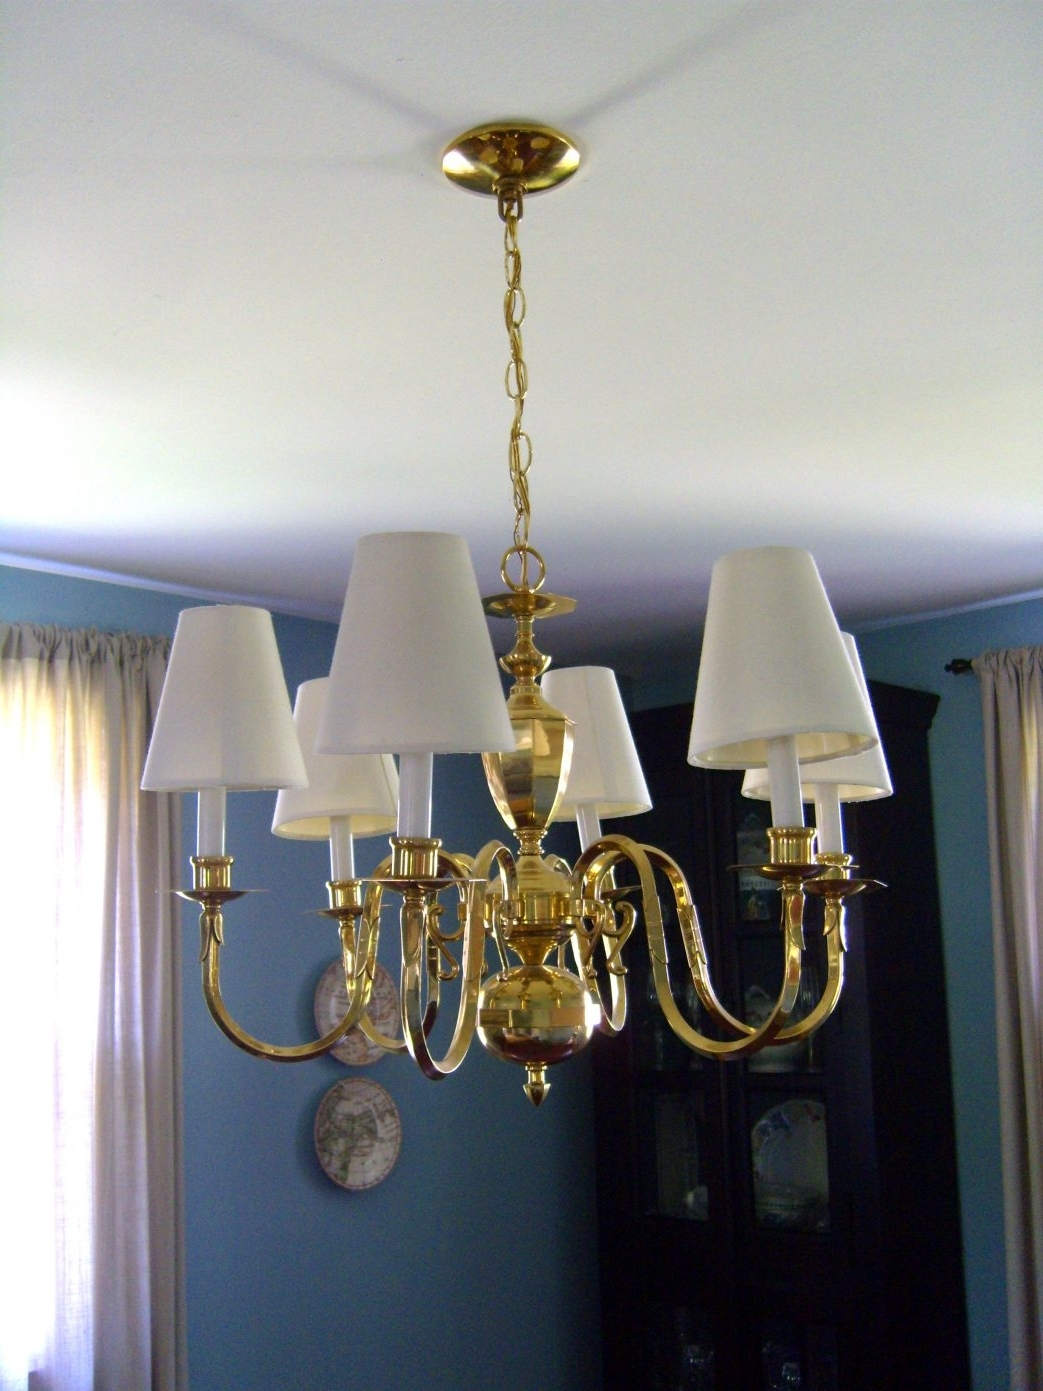 2018 Drum Lamp Shades For Chandeliers Large Chandelier Better Lamps Within Lampshade Chandeliers (View 2 of 20)